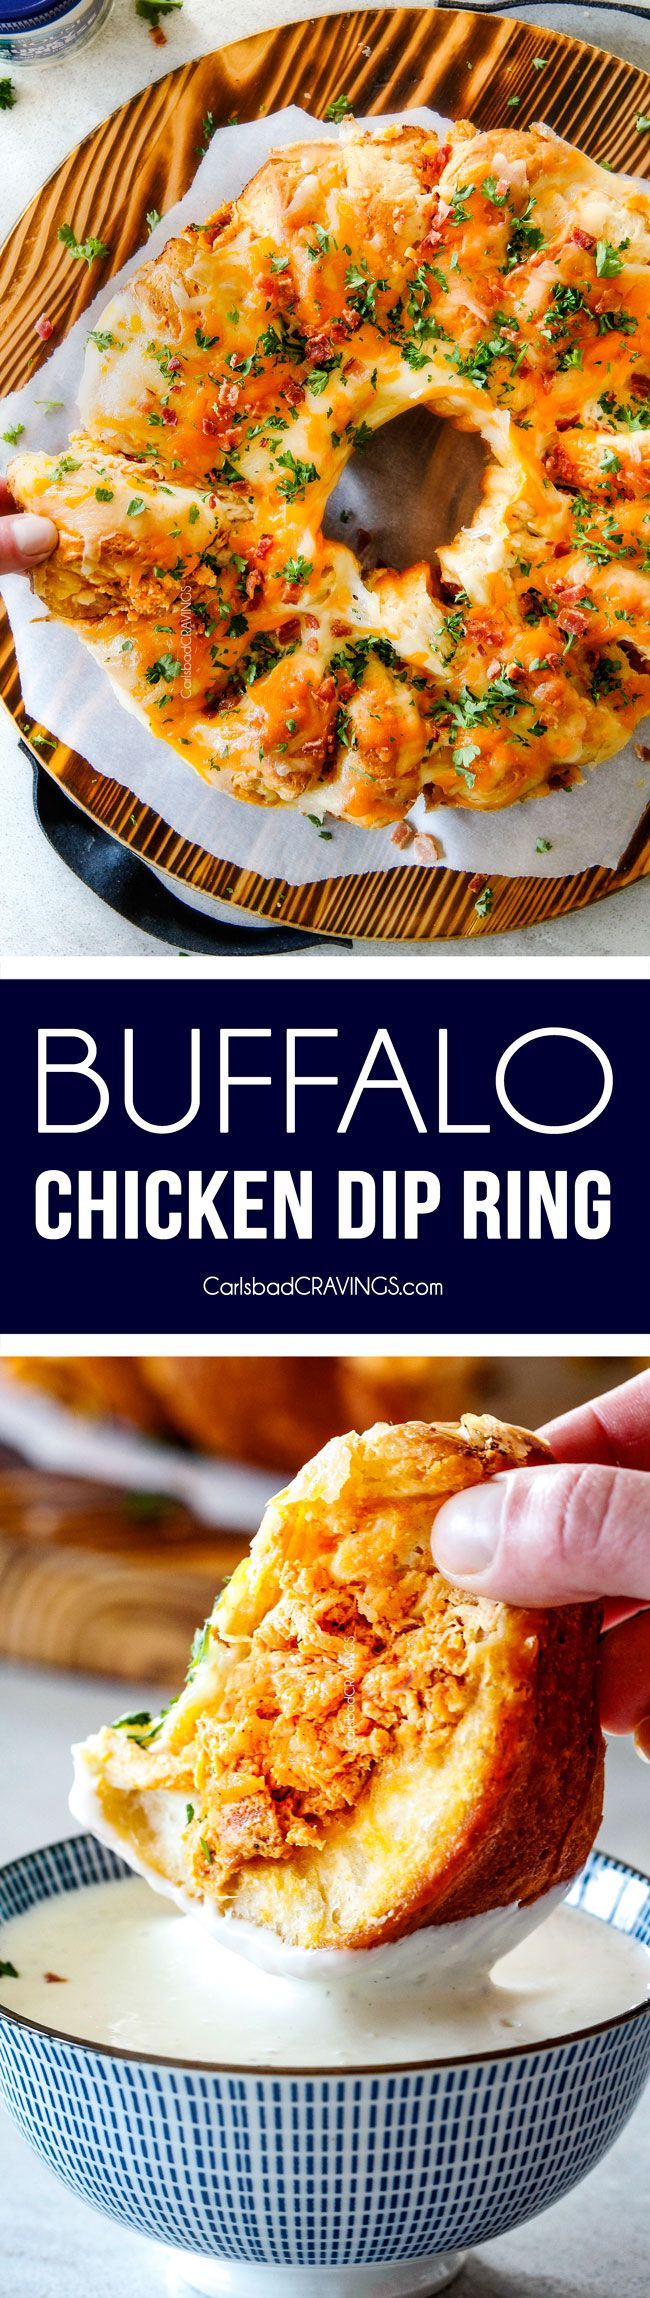 Mega flavorful Buffalo Chicken Dip Ring is your favorite decadent creamy, cheesy dip baked right into a buttery biscuit ring! Crazy delicious EASY crowd pleasing appetizer perfect for parties or game day!It may look super impressive but you won't believe how easy it is!